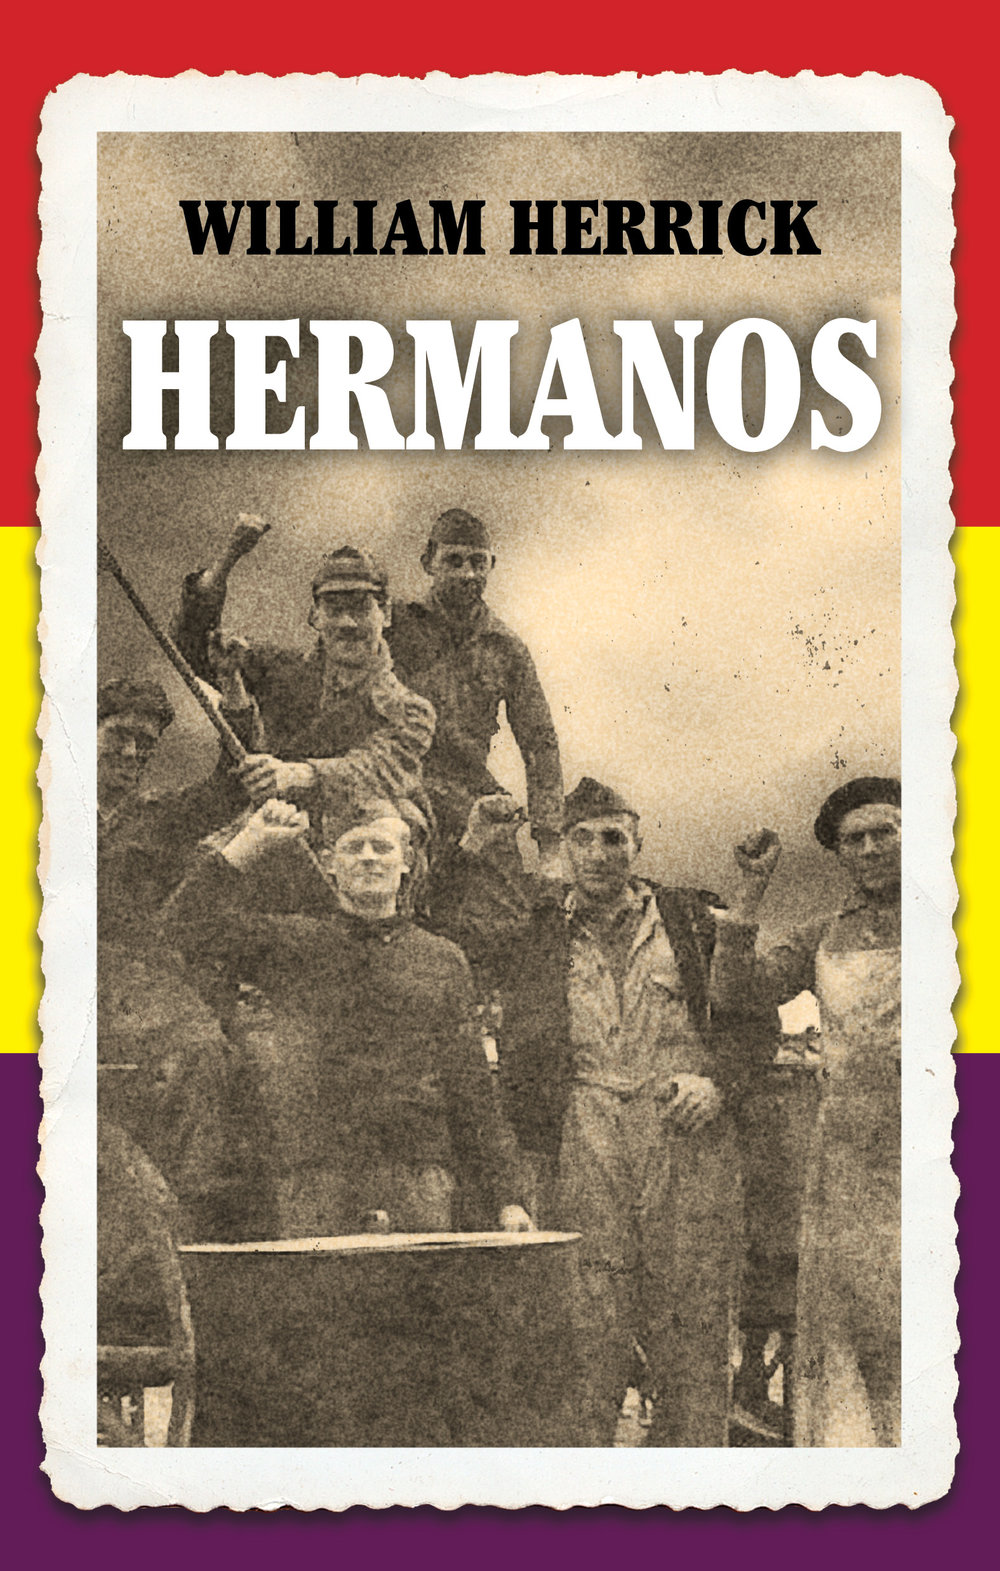 hermanos-front-cover.jpg